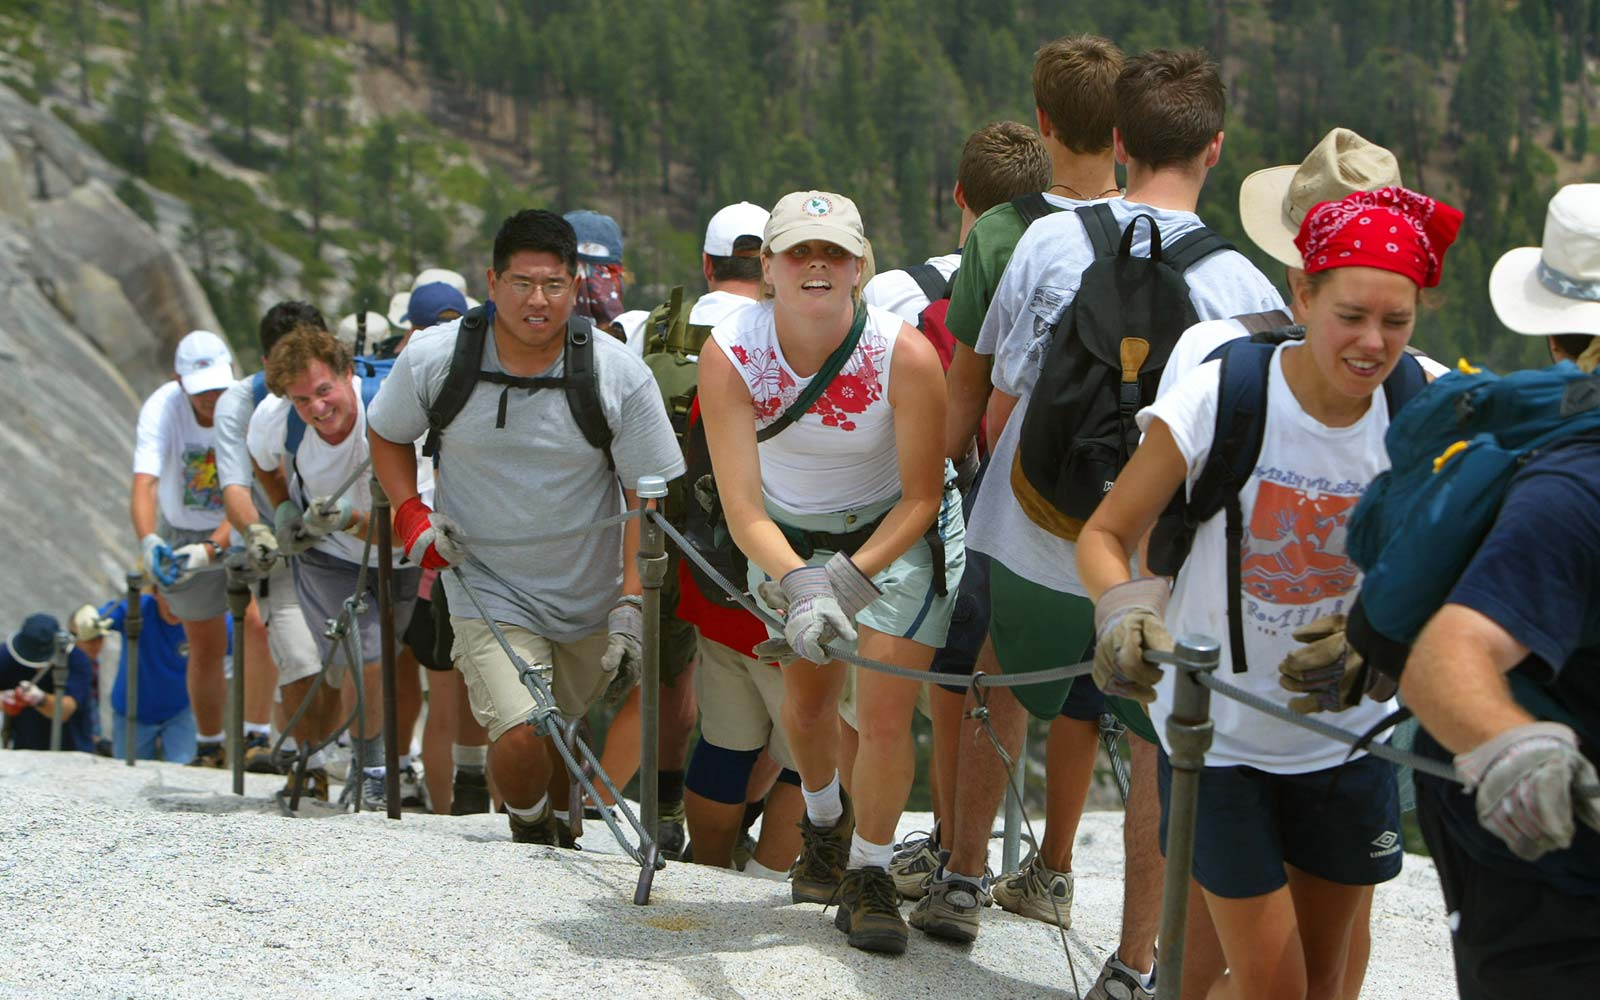 Only the bravest hikers can manage Yosemite's most difficult hike